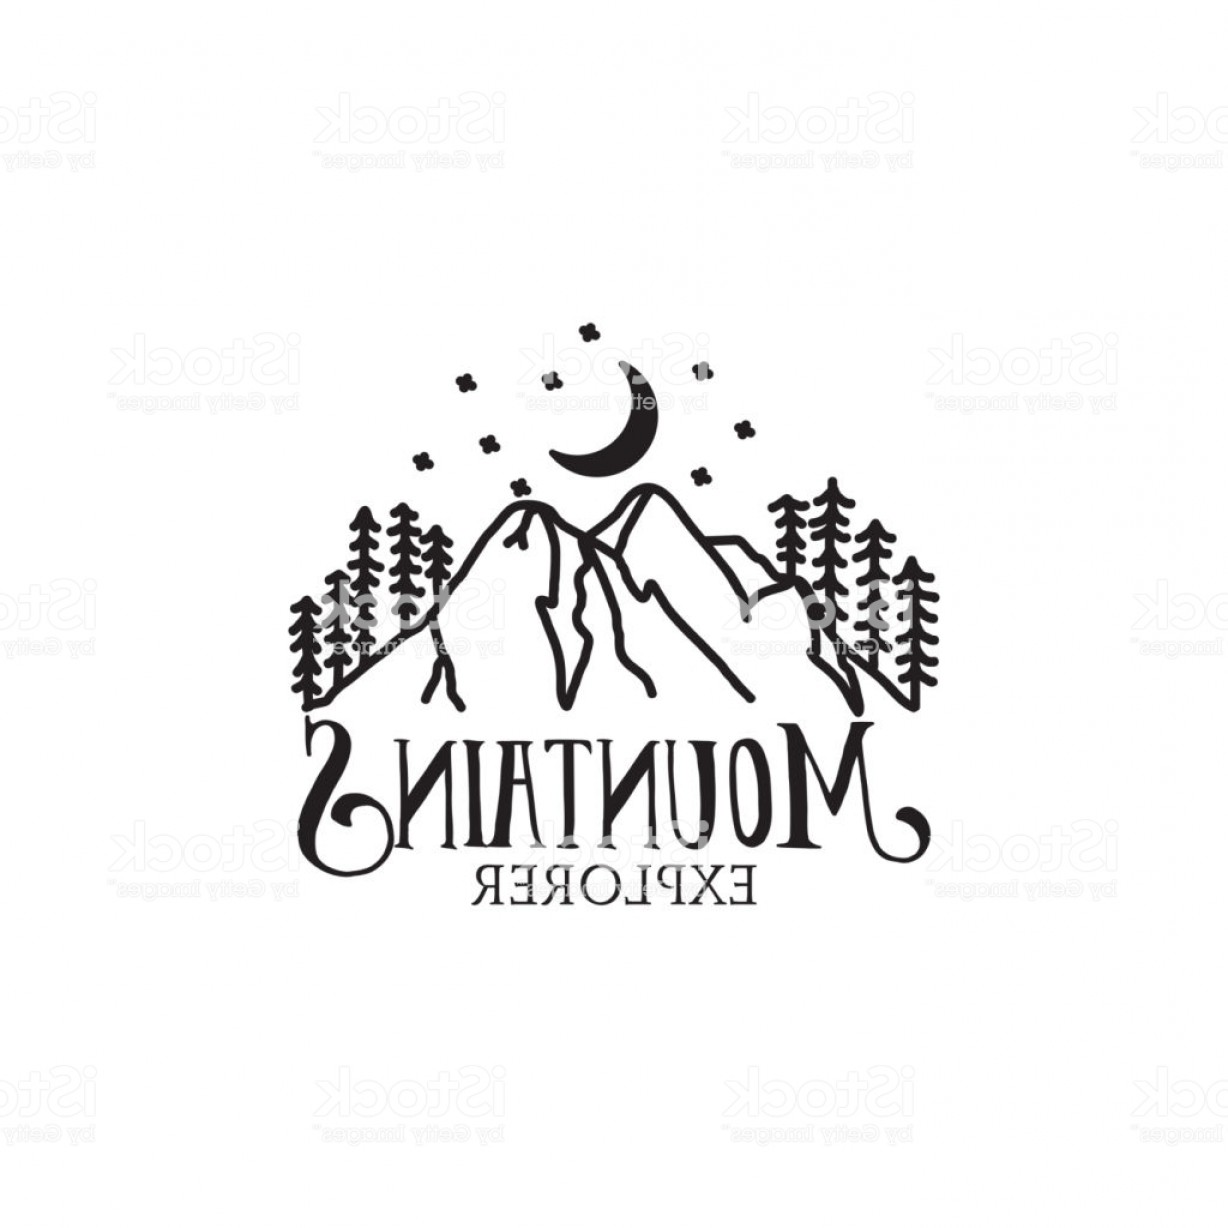 Hipster Logo Vectors Mountain: Hipster Mountain Explorer Illustration Logo Gm